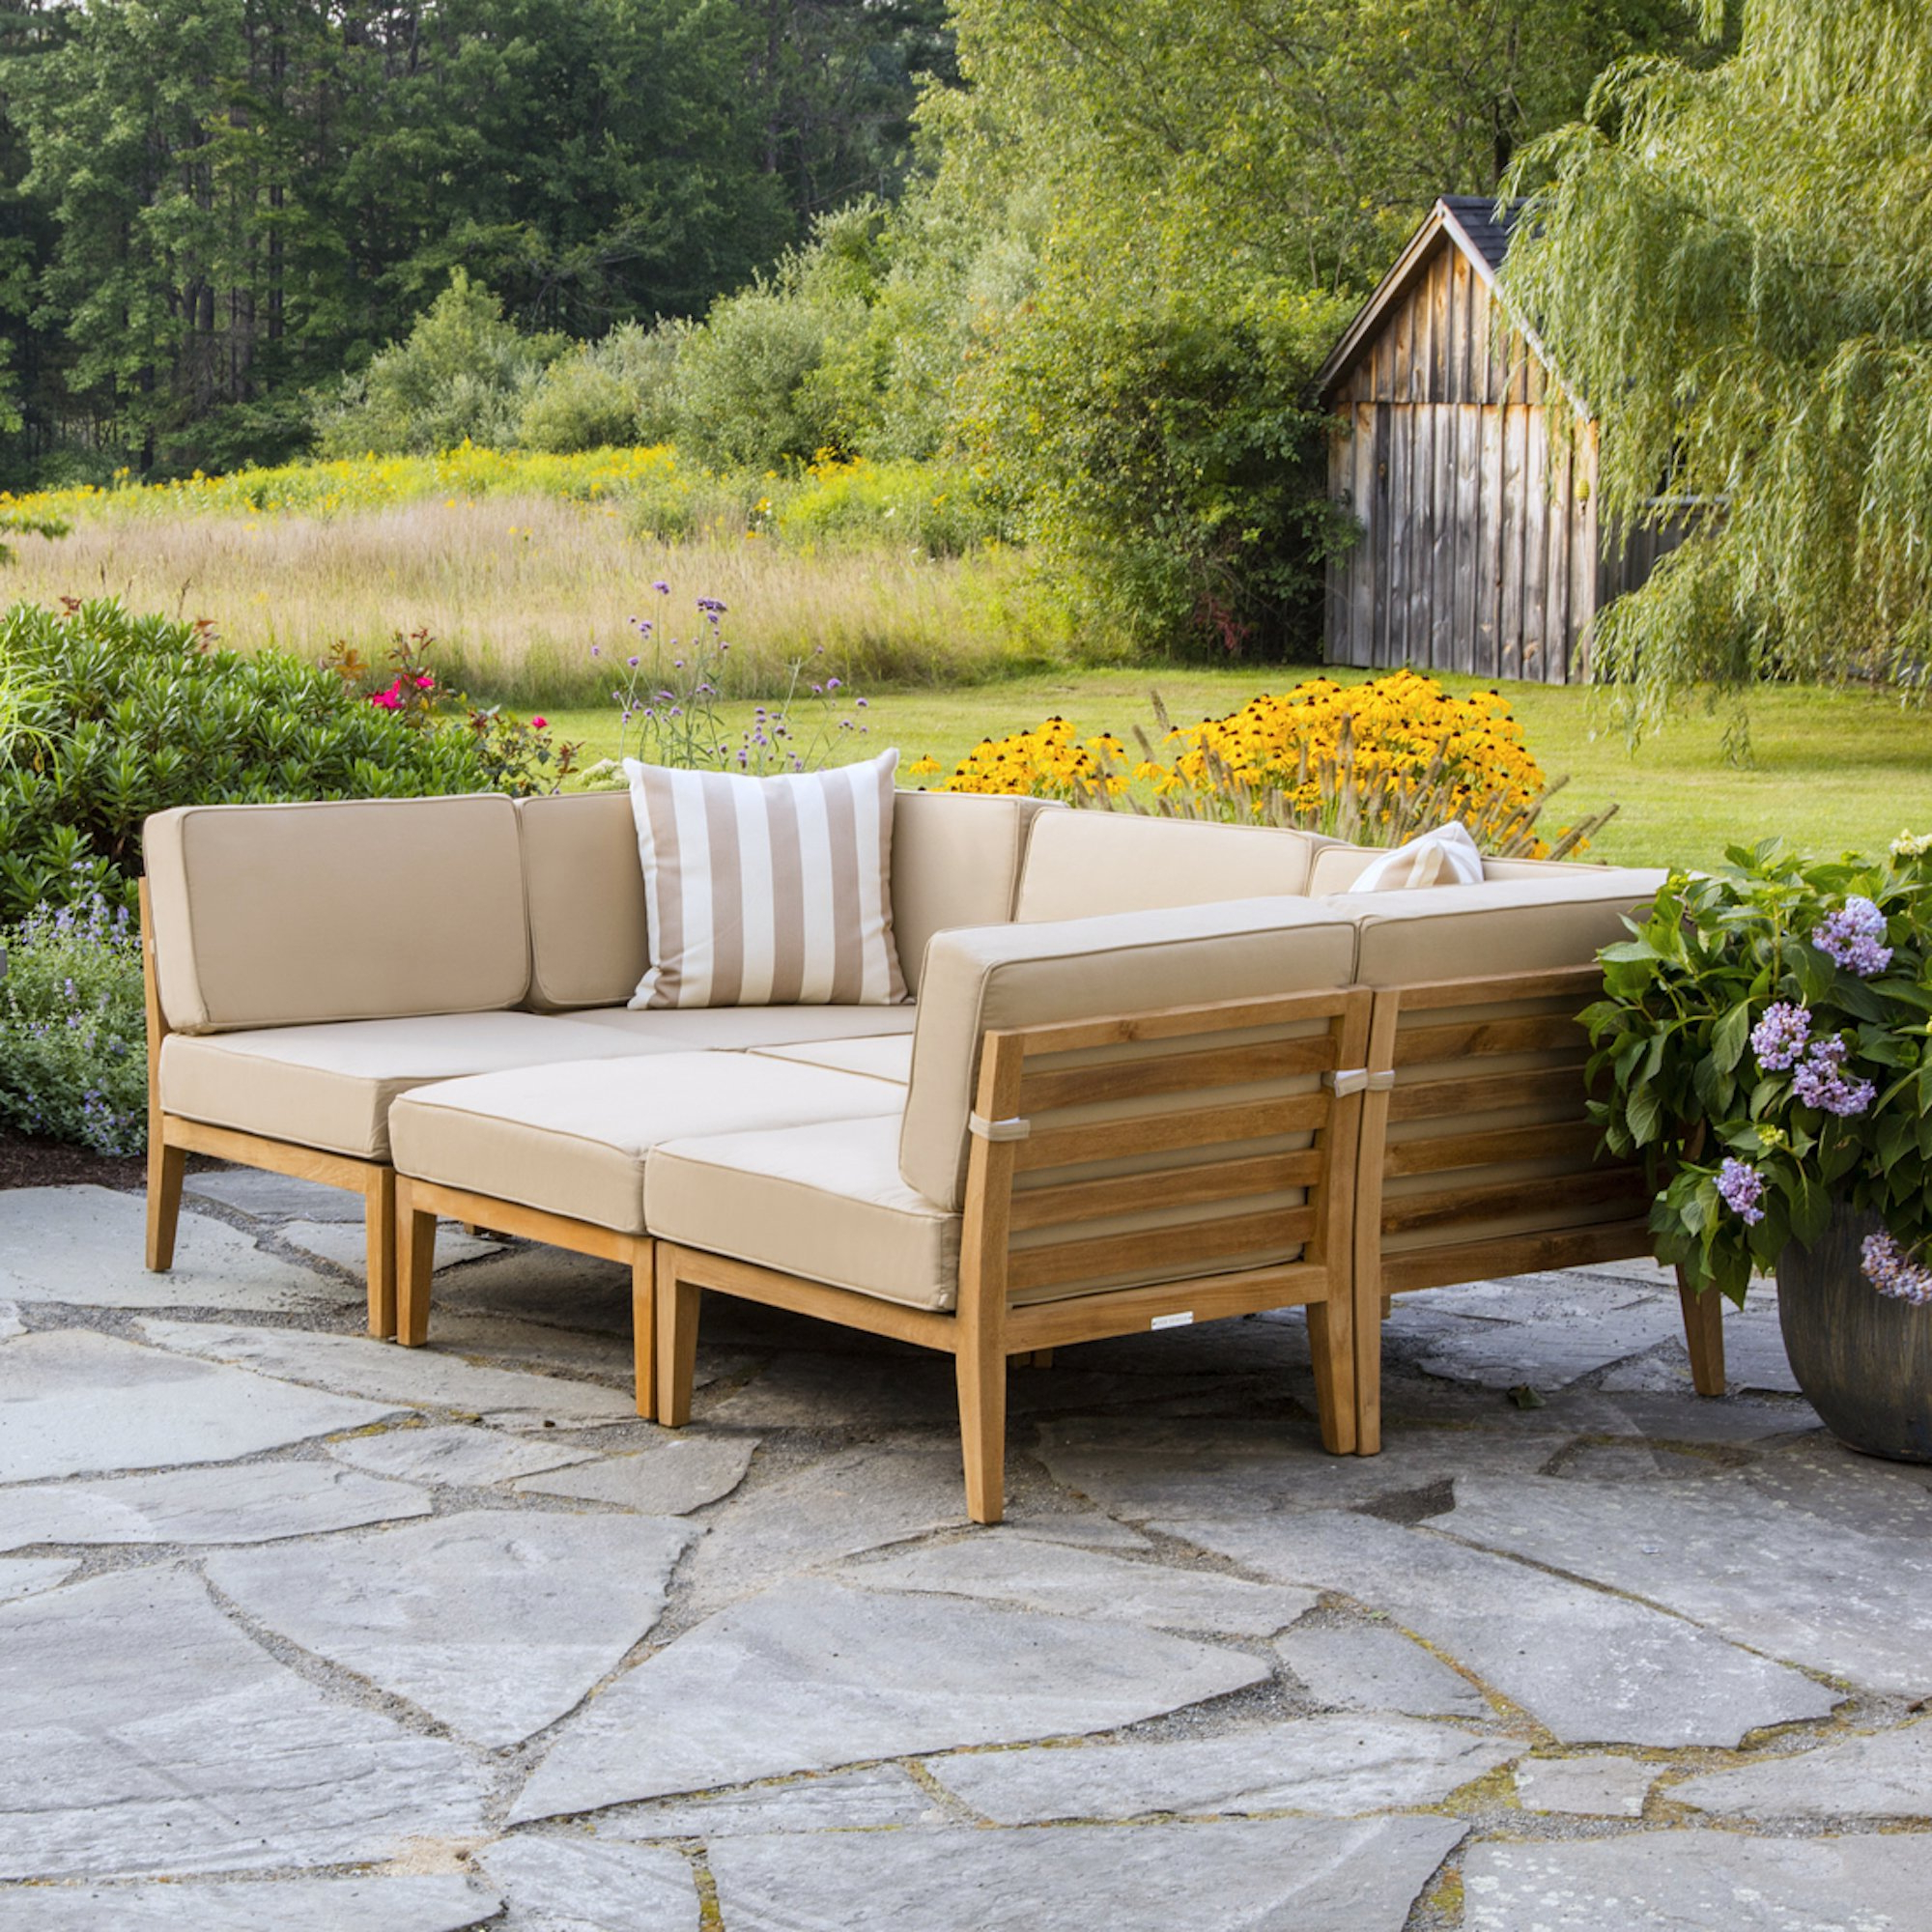 Newest Clary Teak Lounge Patio Daybeds With Cushion Intended For Bali Teak Patio Sectional With Cushions (View 14 of 20)